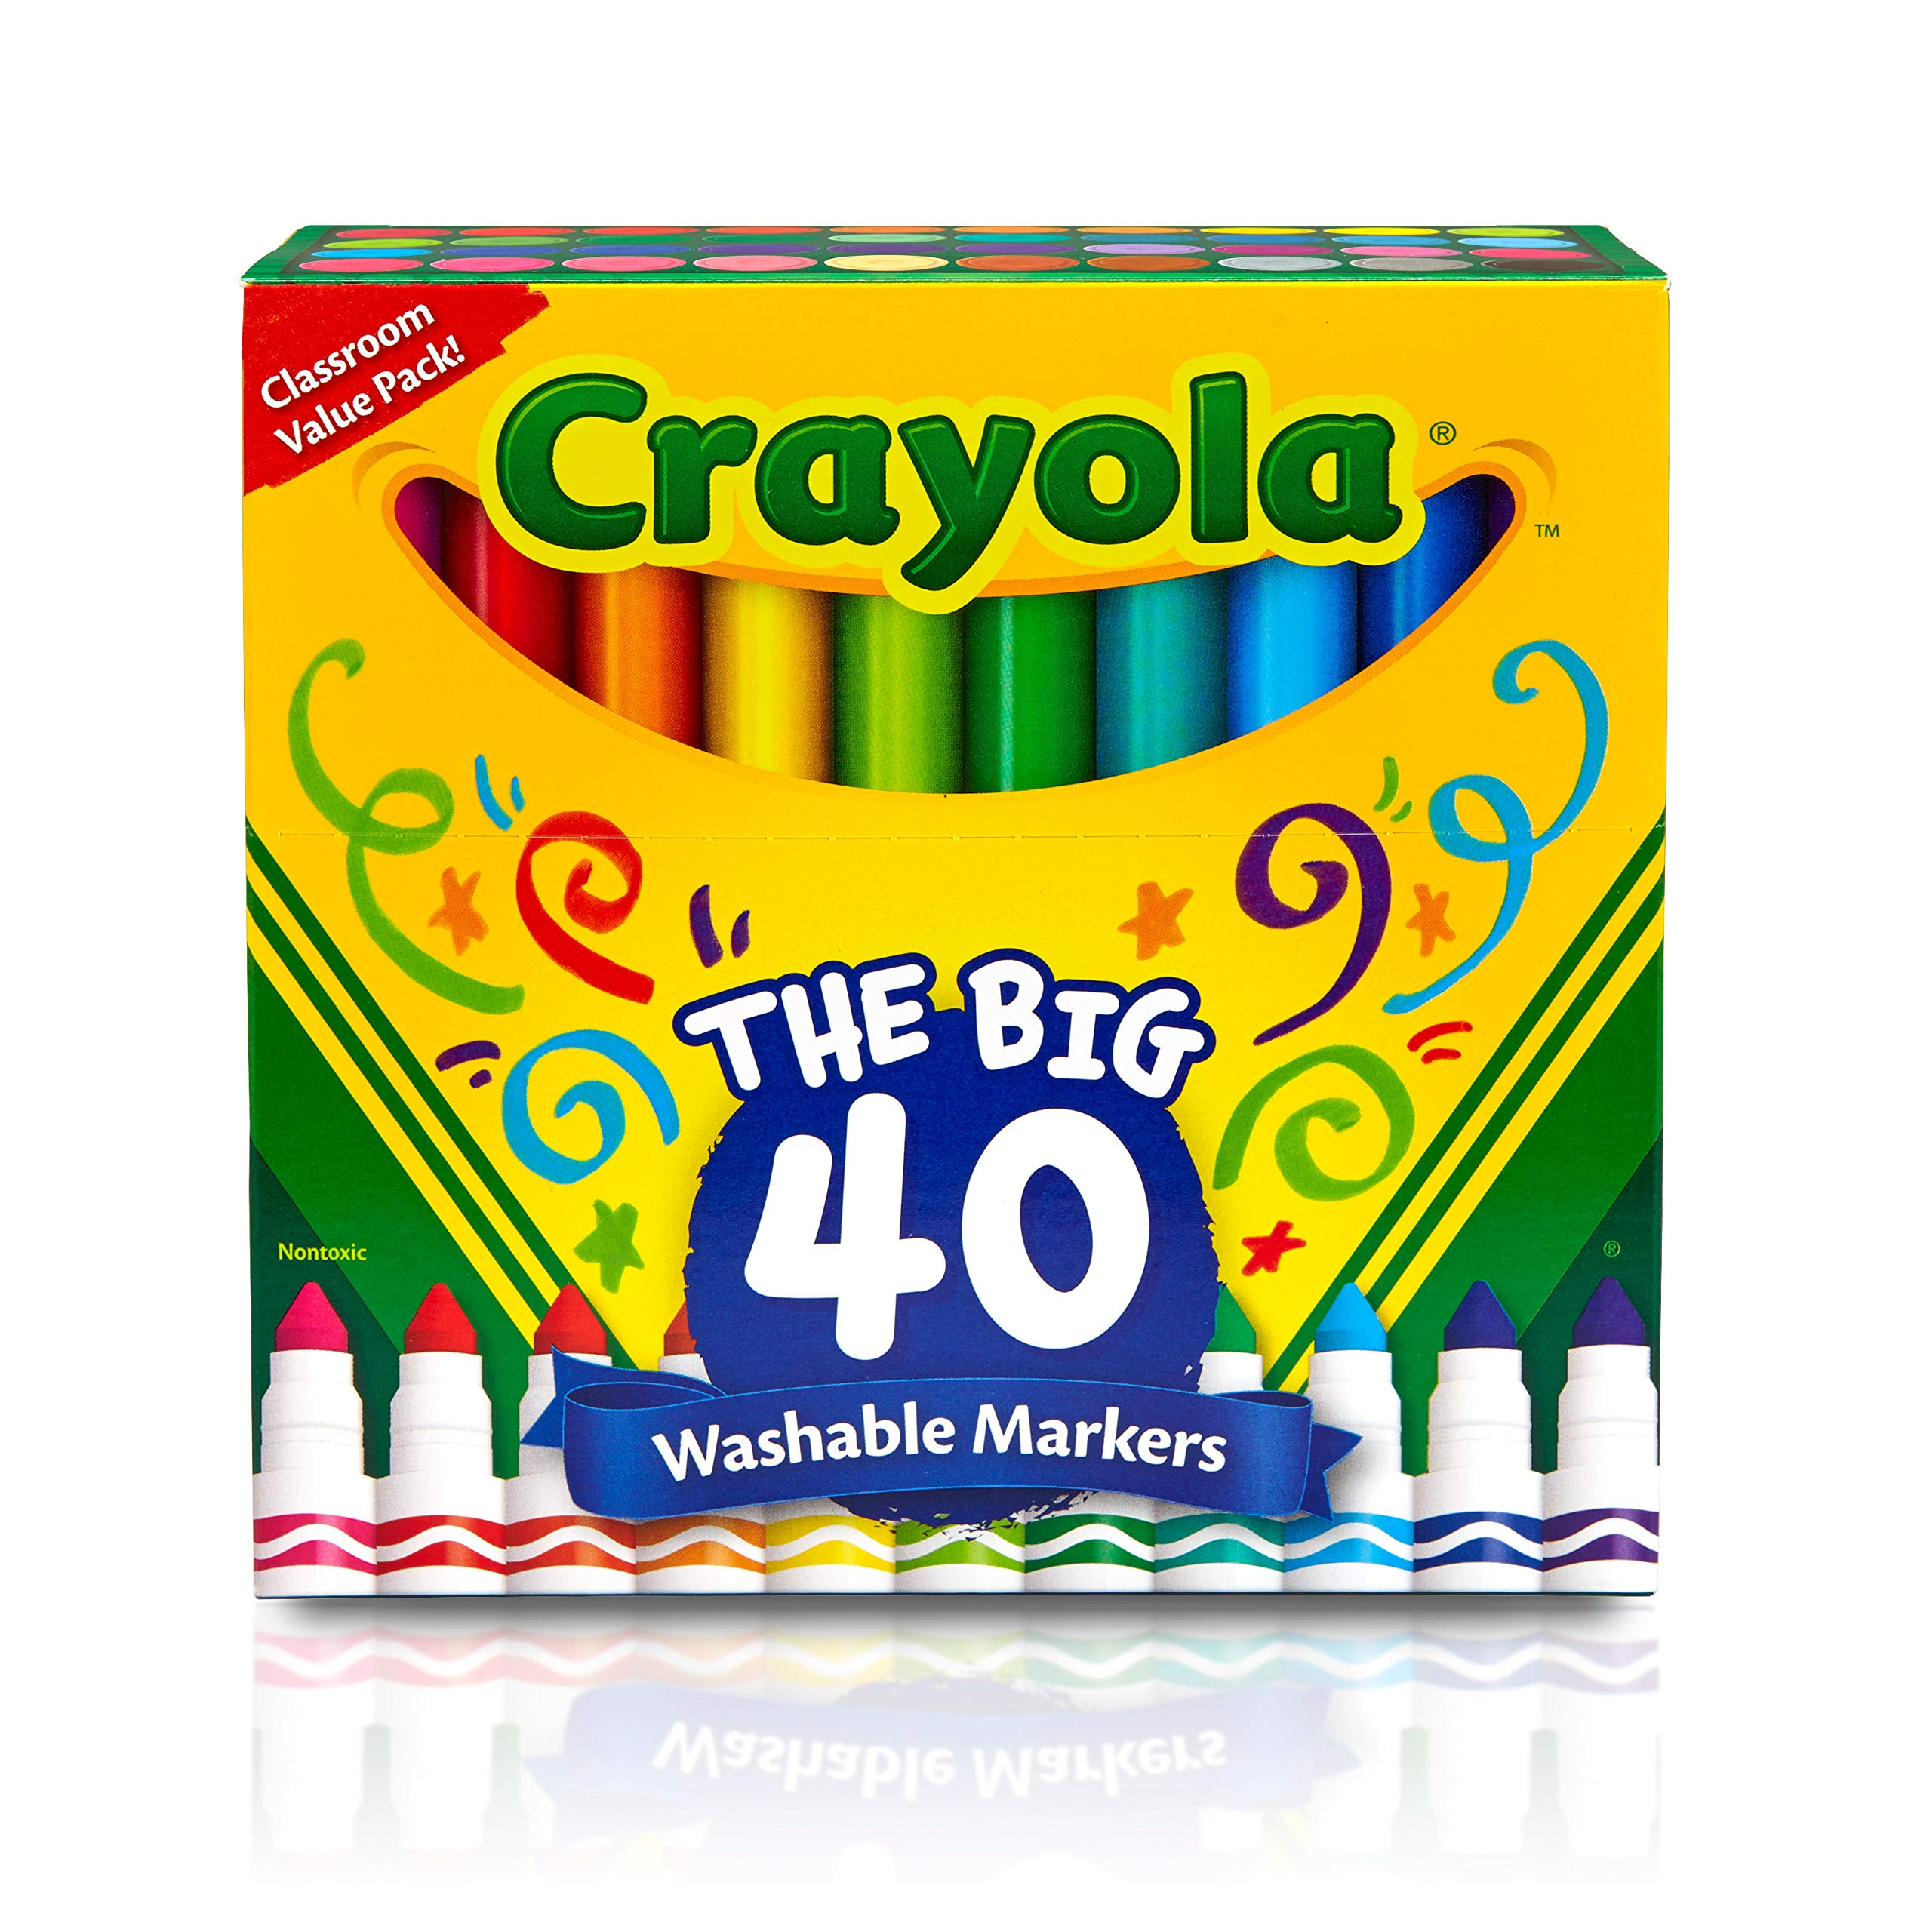 Crayola Ultra Clean Washable Broad Line Markers, 40 Classic Colors, Gift For Kids by Crayola